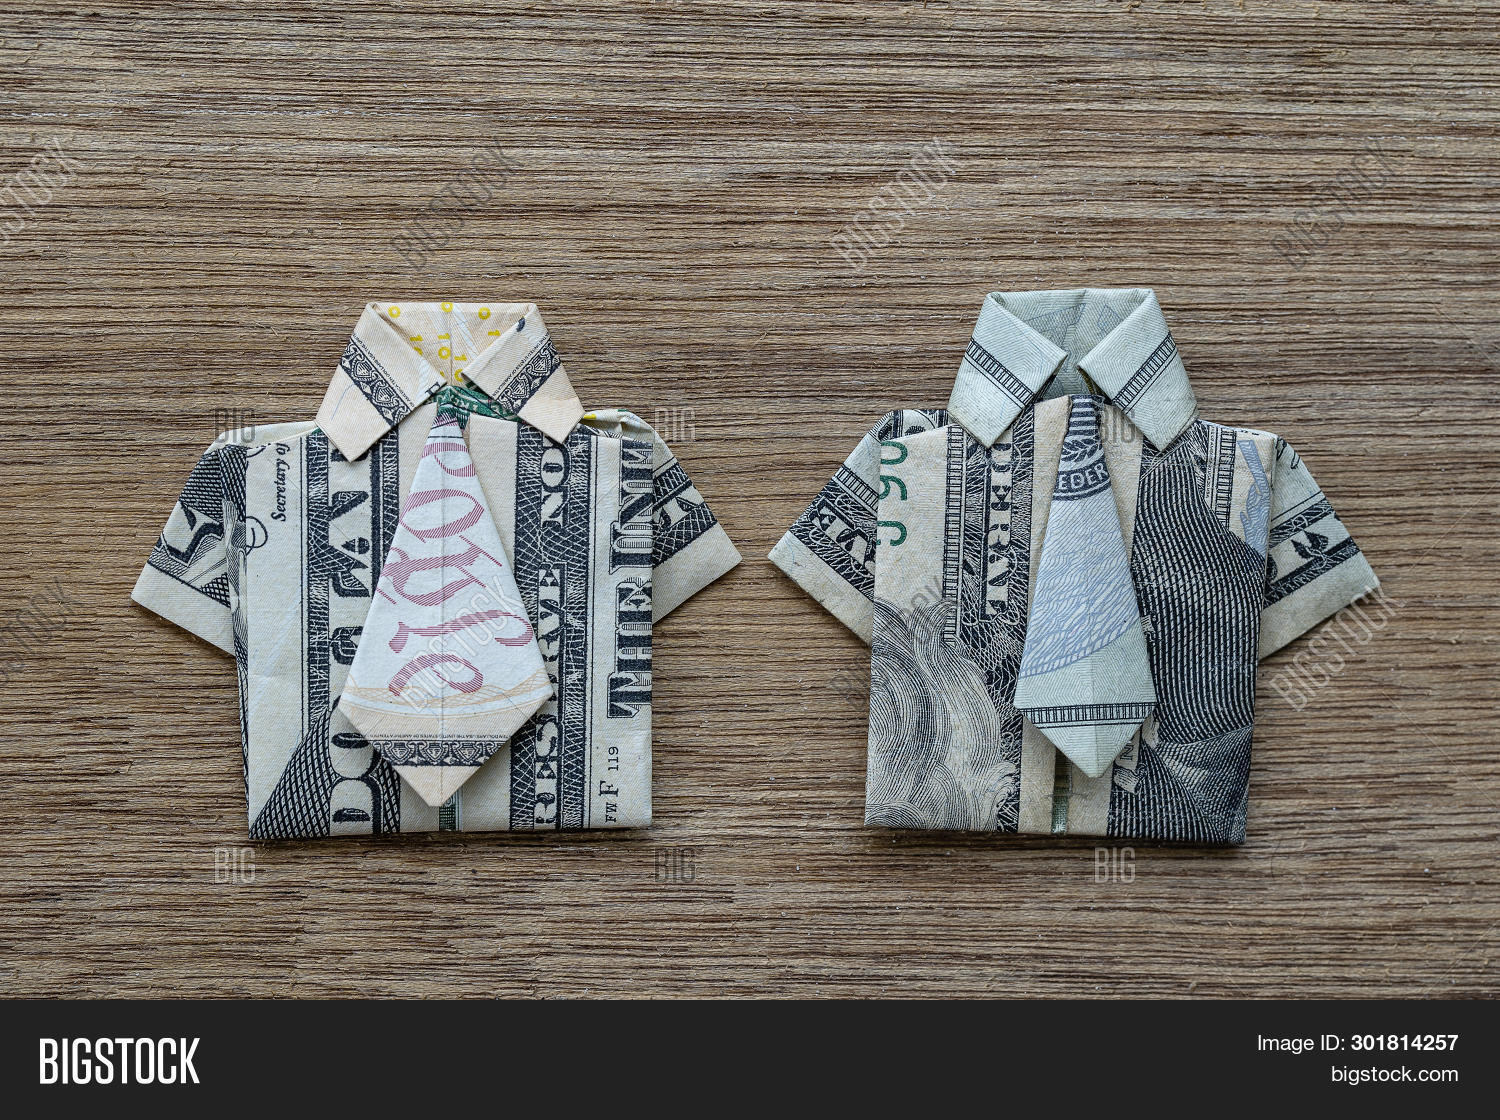 Money Origami Shirt and Tie Folding Instructions | 1120x1500